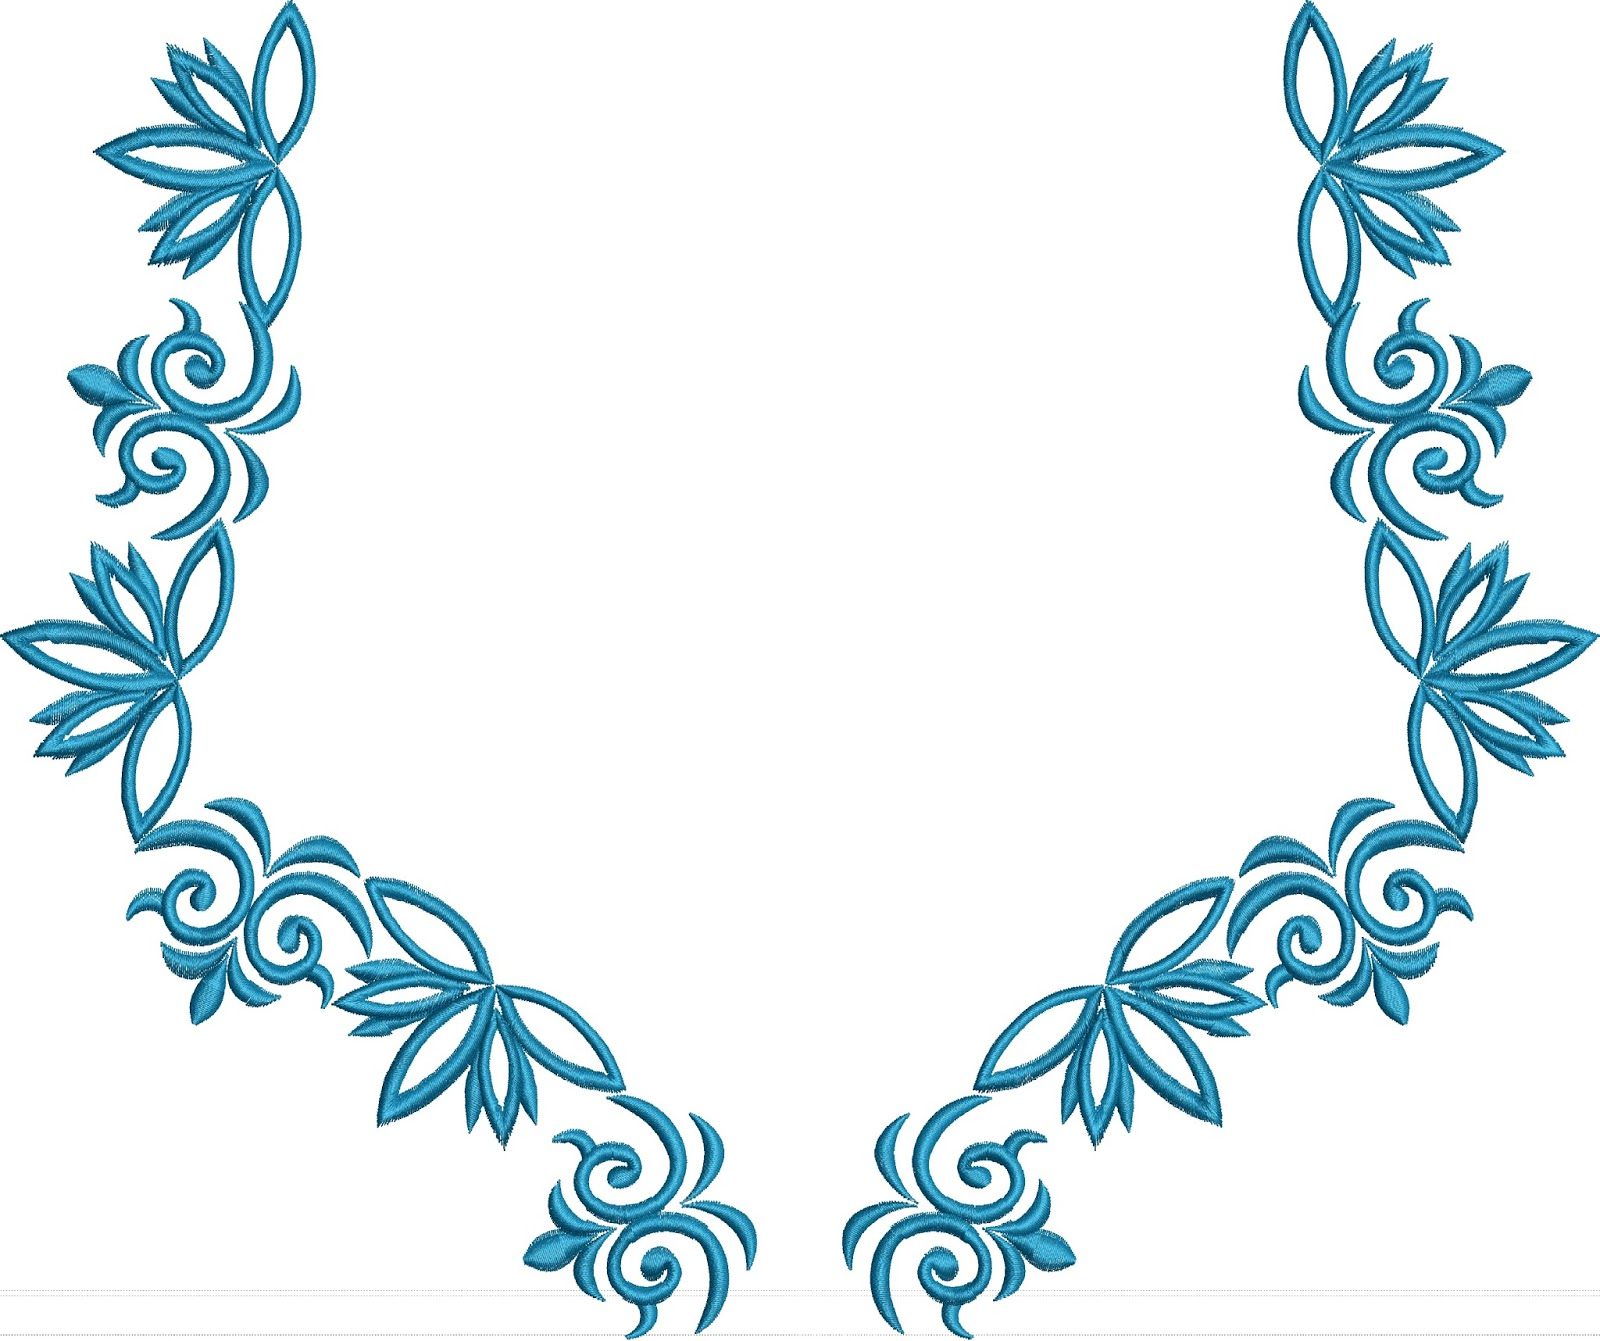 Embroidery Designs Free Download Dst Iskov